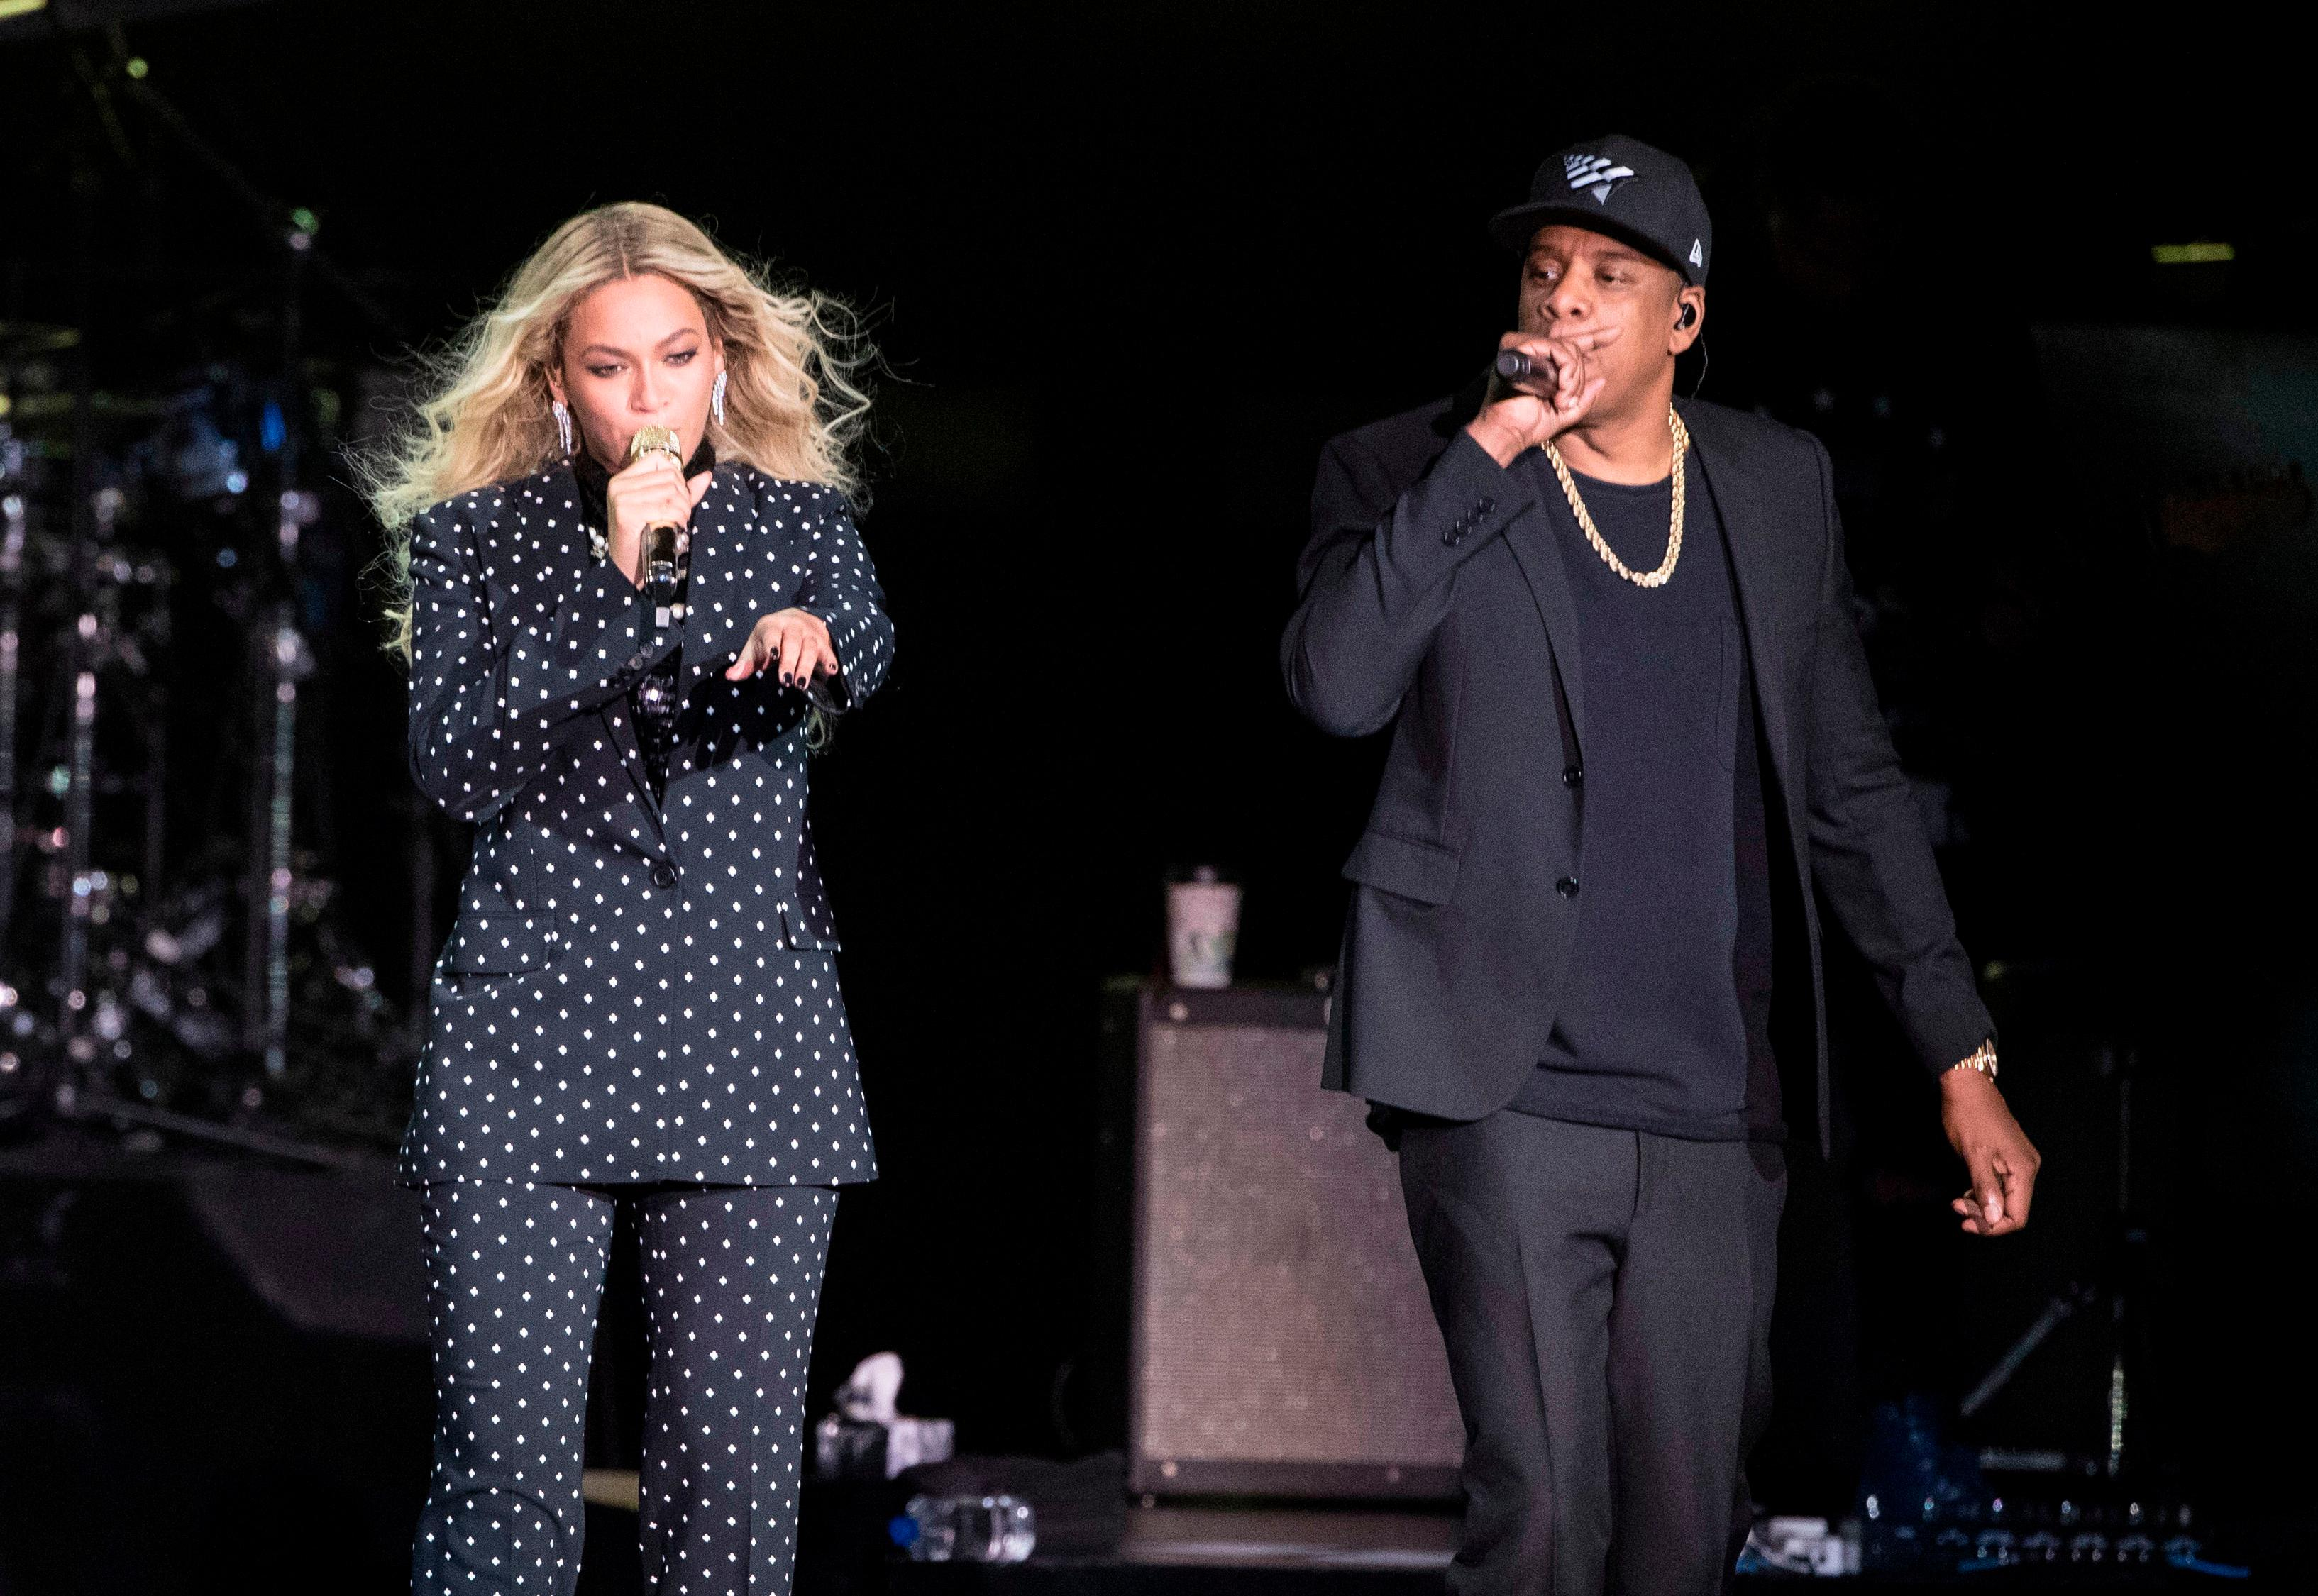 FILE - In this Nov. 4, 2016 file photo, Beyonce and Jay-Z perform during a Democratic presidential candidate Hillary Clinton campaign rally in Cleveland.(AP Photo/Matt Rourke, File)